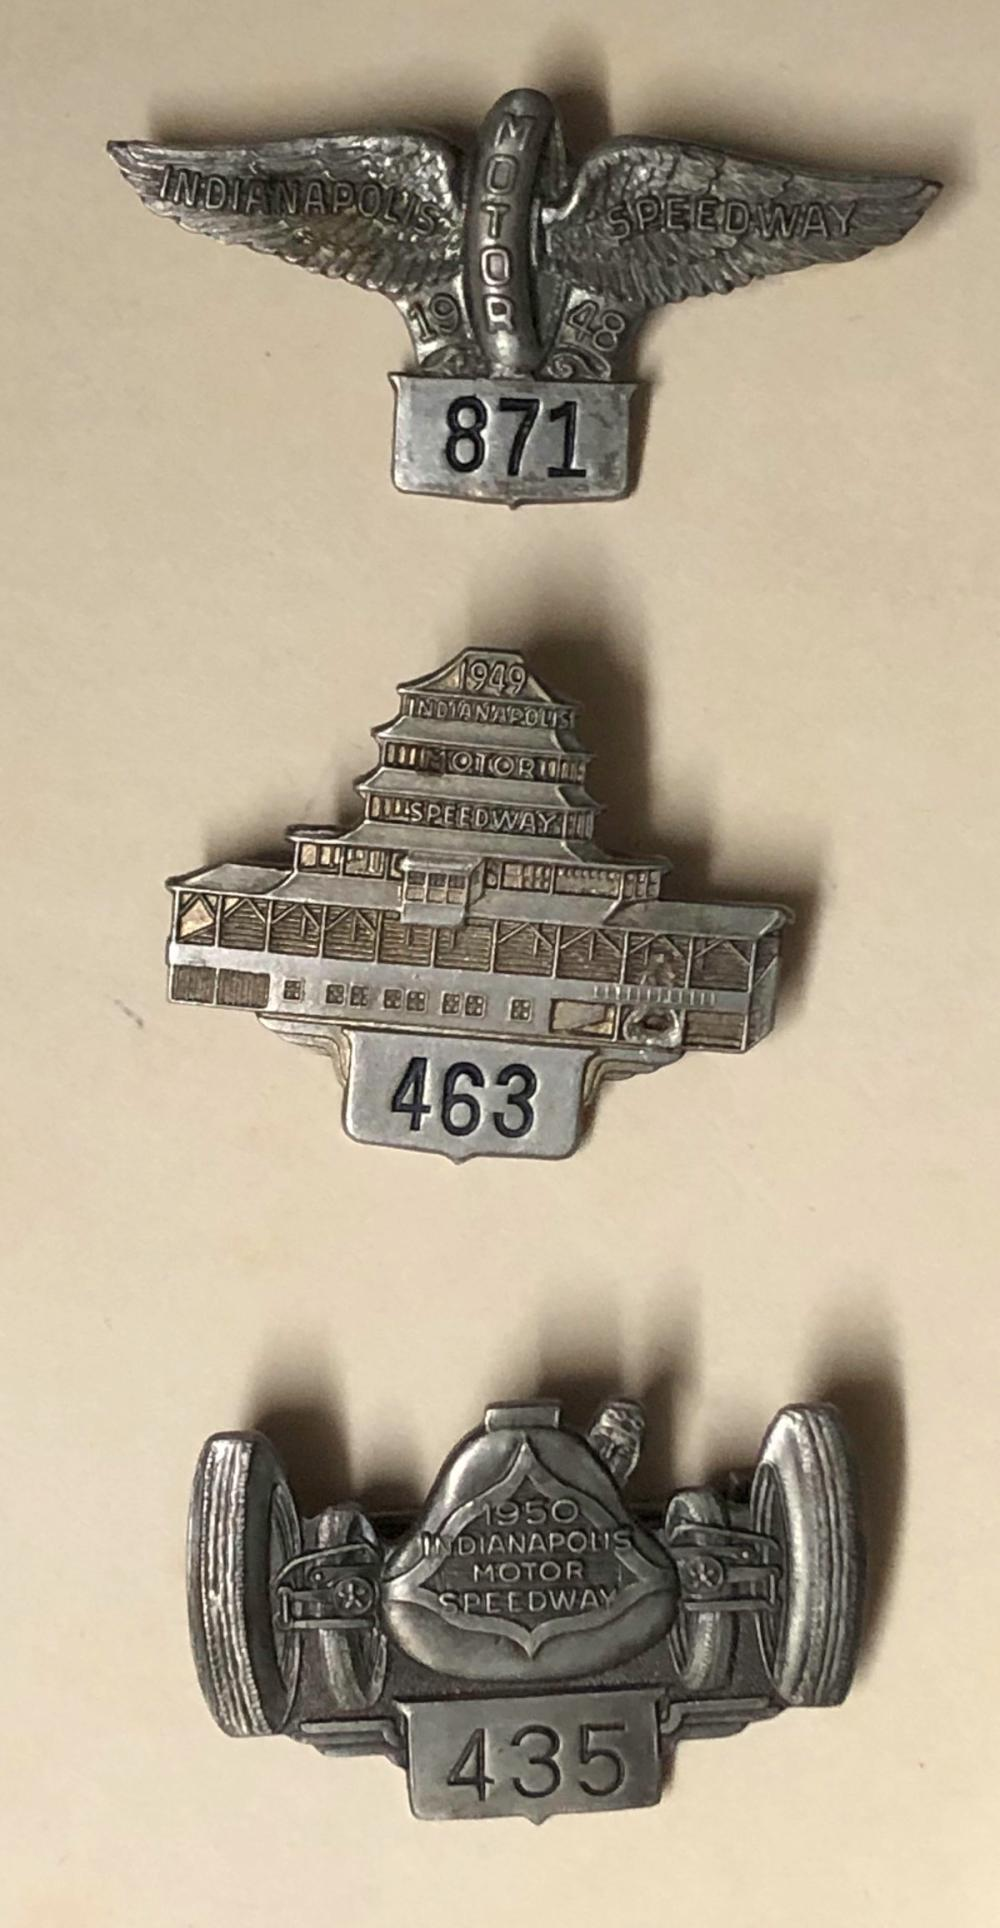 Three INDY 500 entrants pins, 1948, 1949, 1950